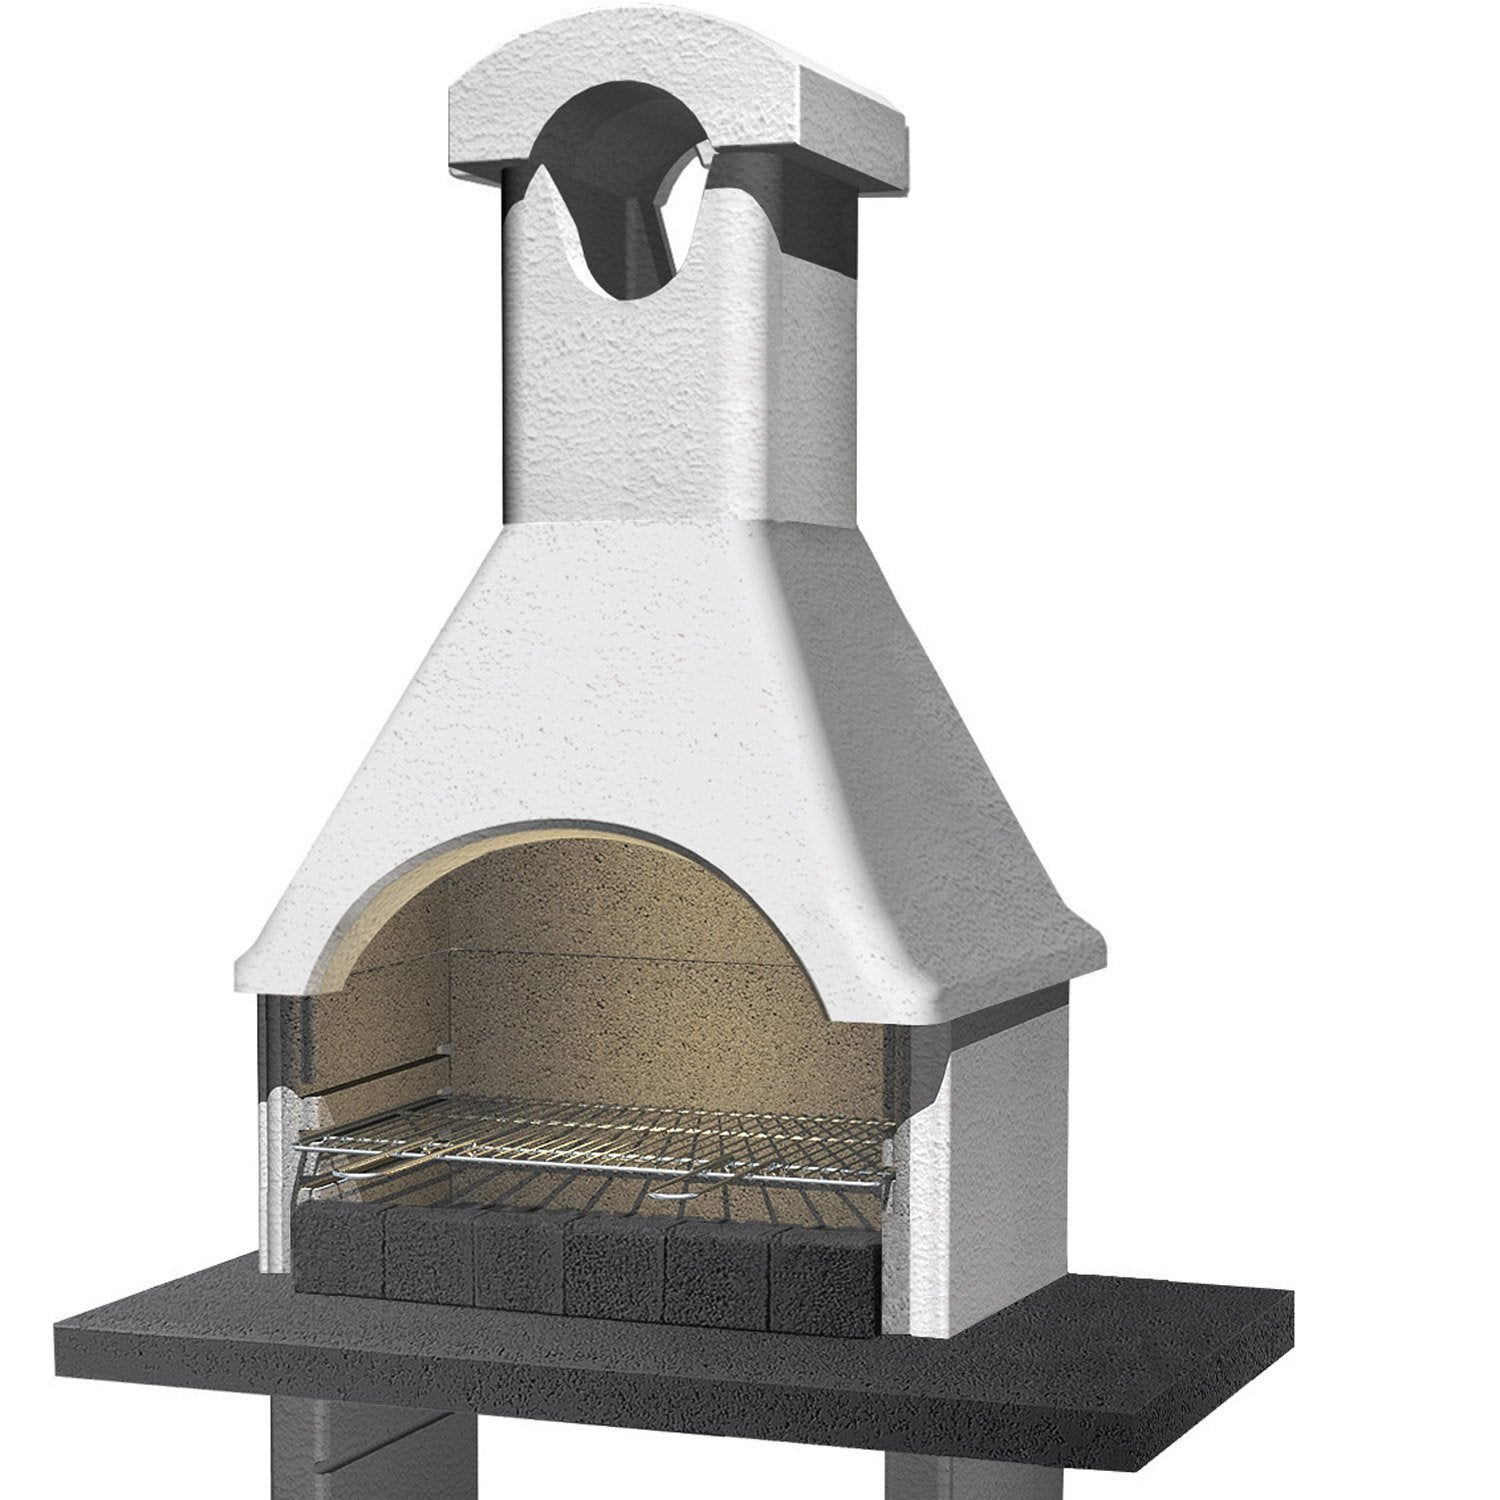 Barbecue ginevra l 64 x p 114 x h 210 cm leroy merlin for Barbecue le roy merlin